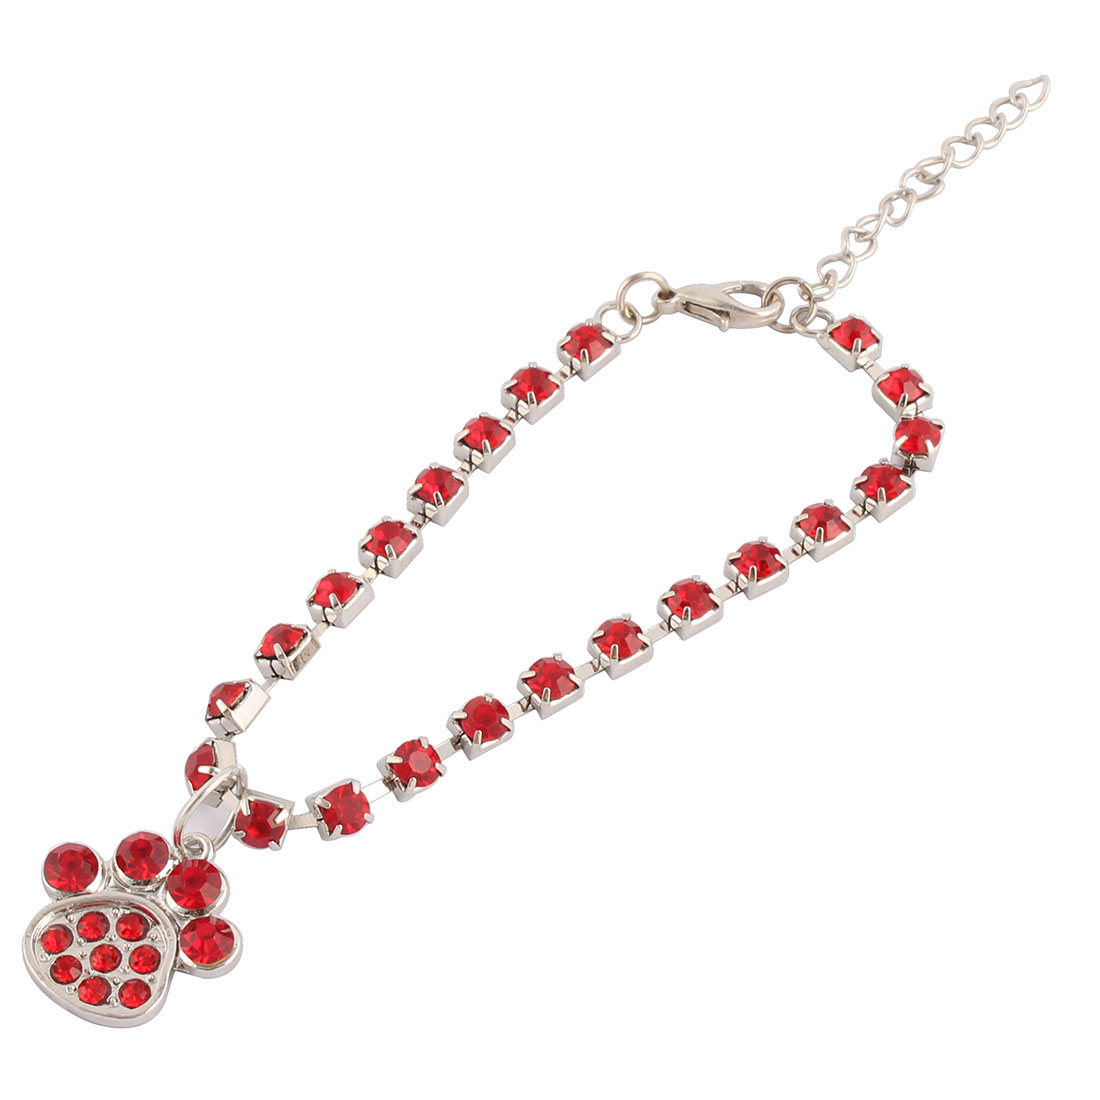 Outdoor Cat Rhinestone Laid Metal Paw Pendent Decoration Pet Necklace Bracelet Red